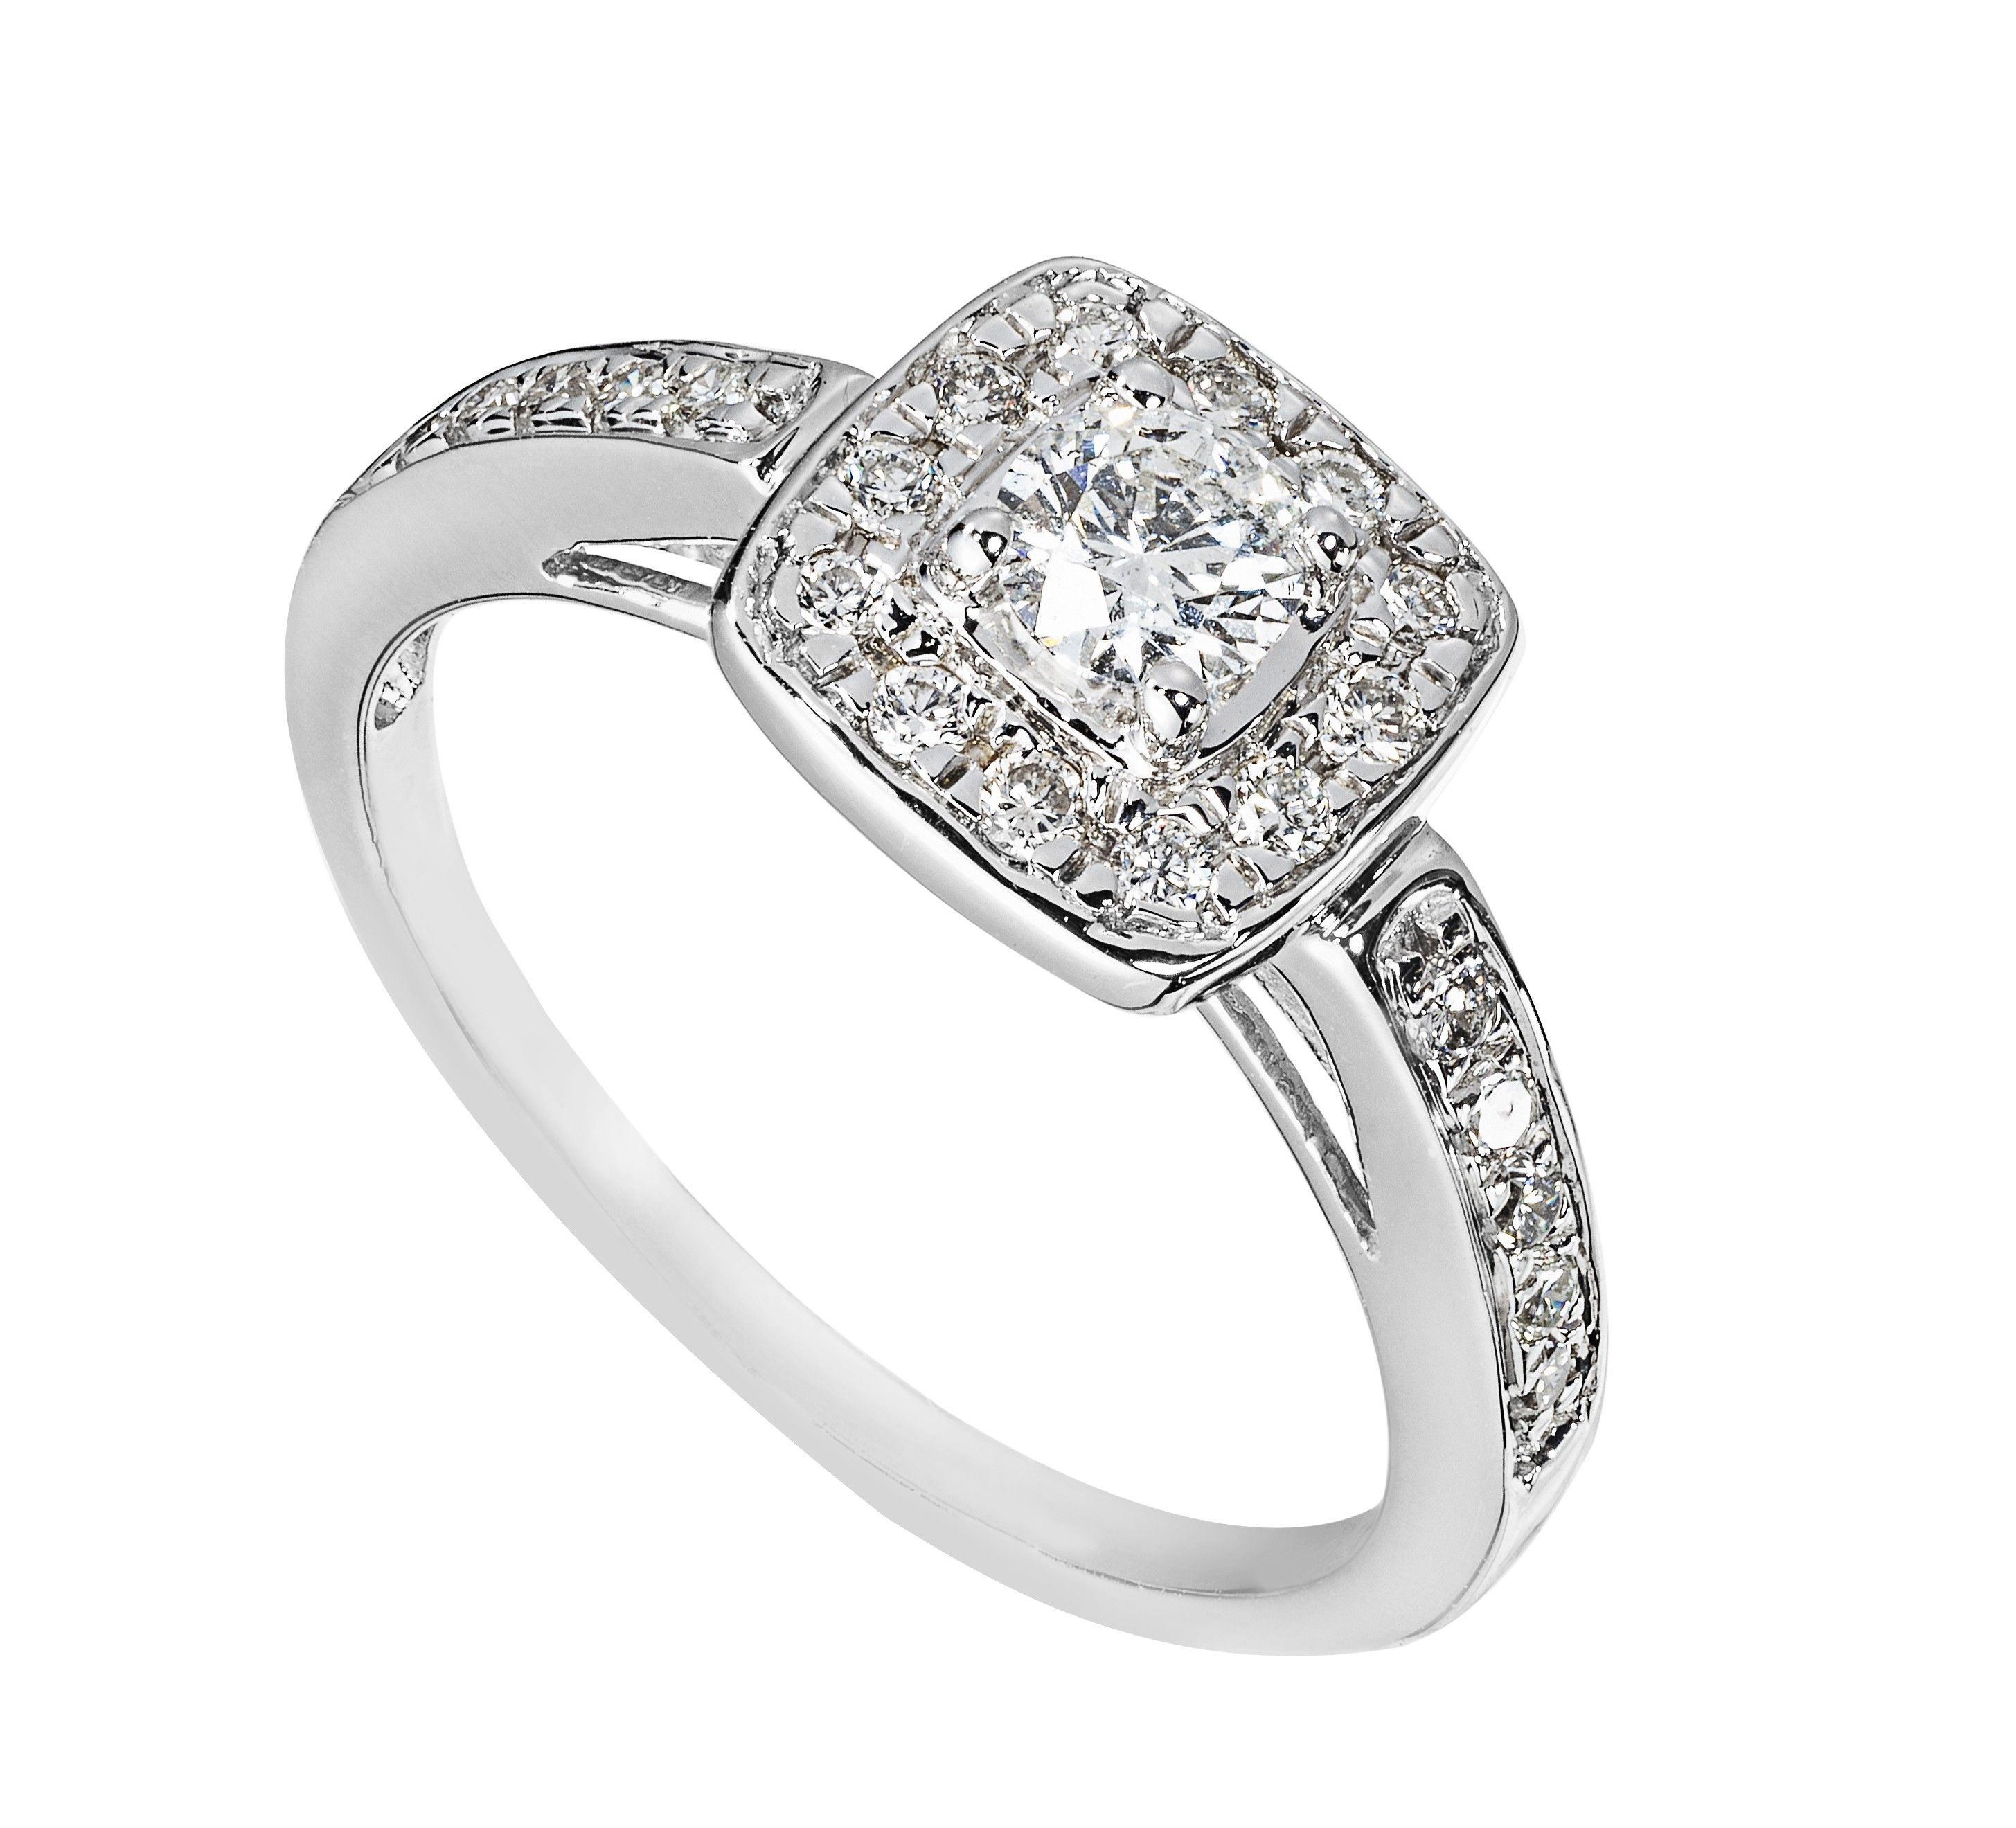 9ct White Gold 050 Carat Diamond Halo Ring